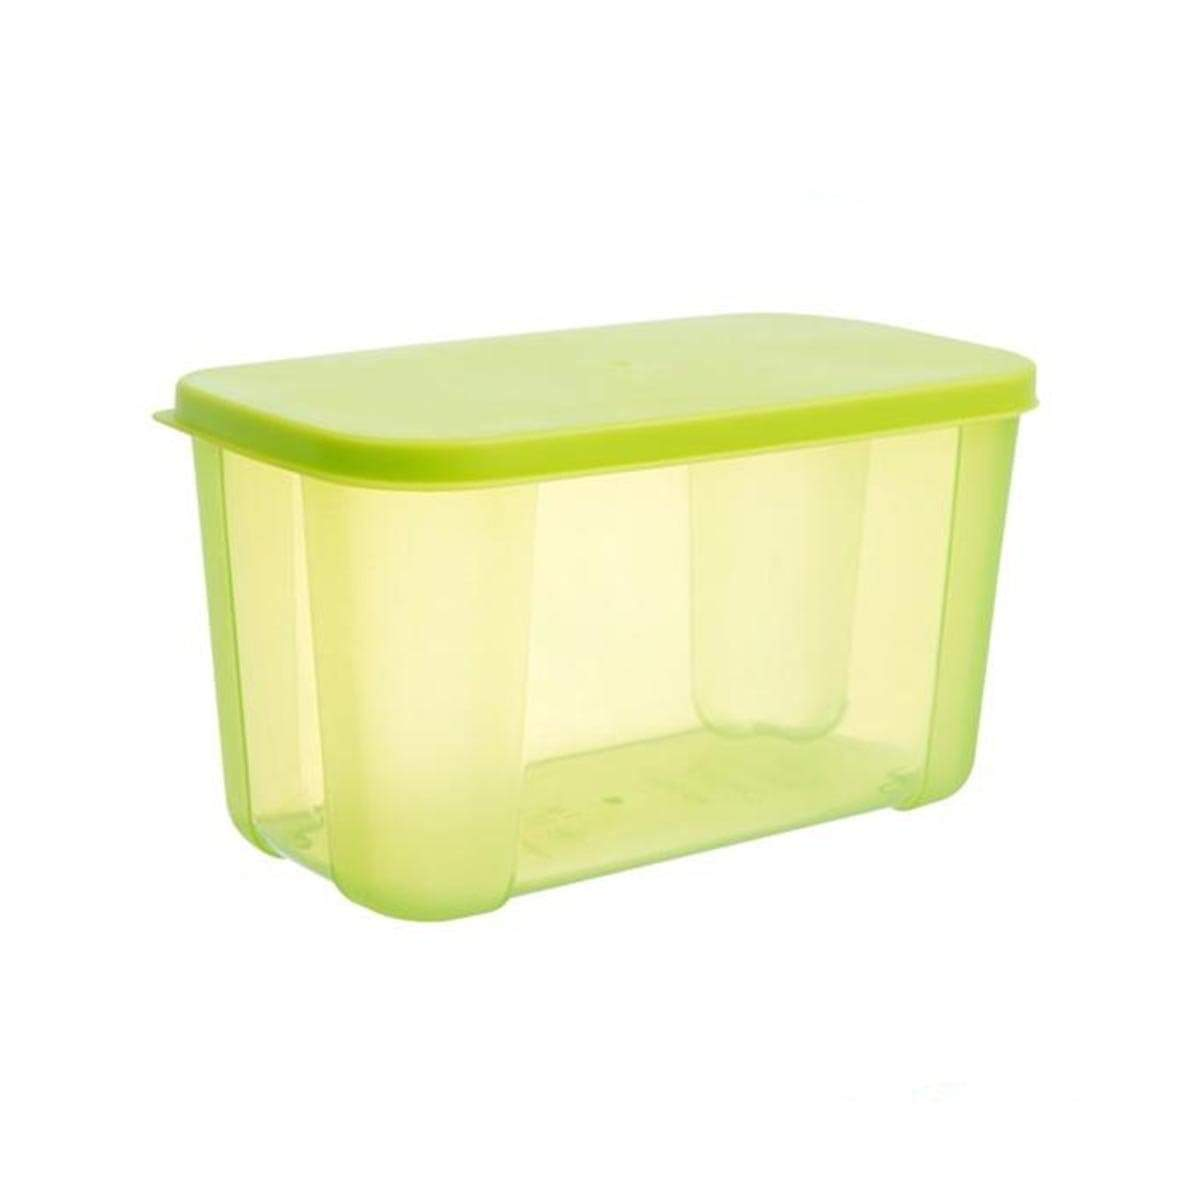 0208 Food Container 1.6L